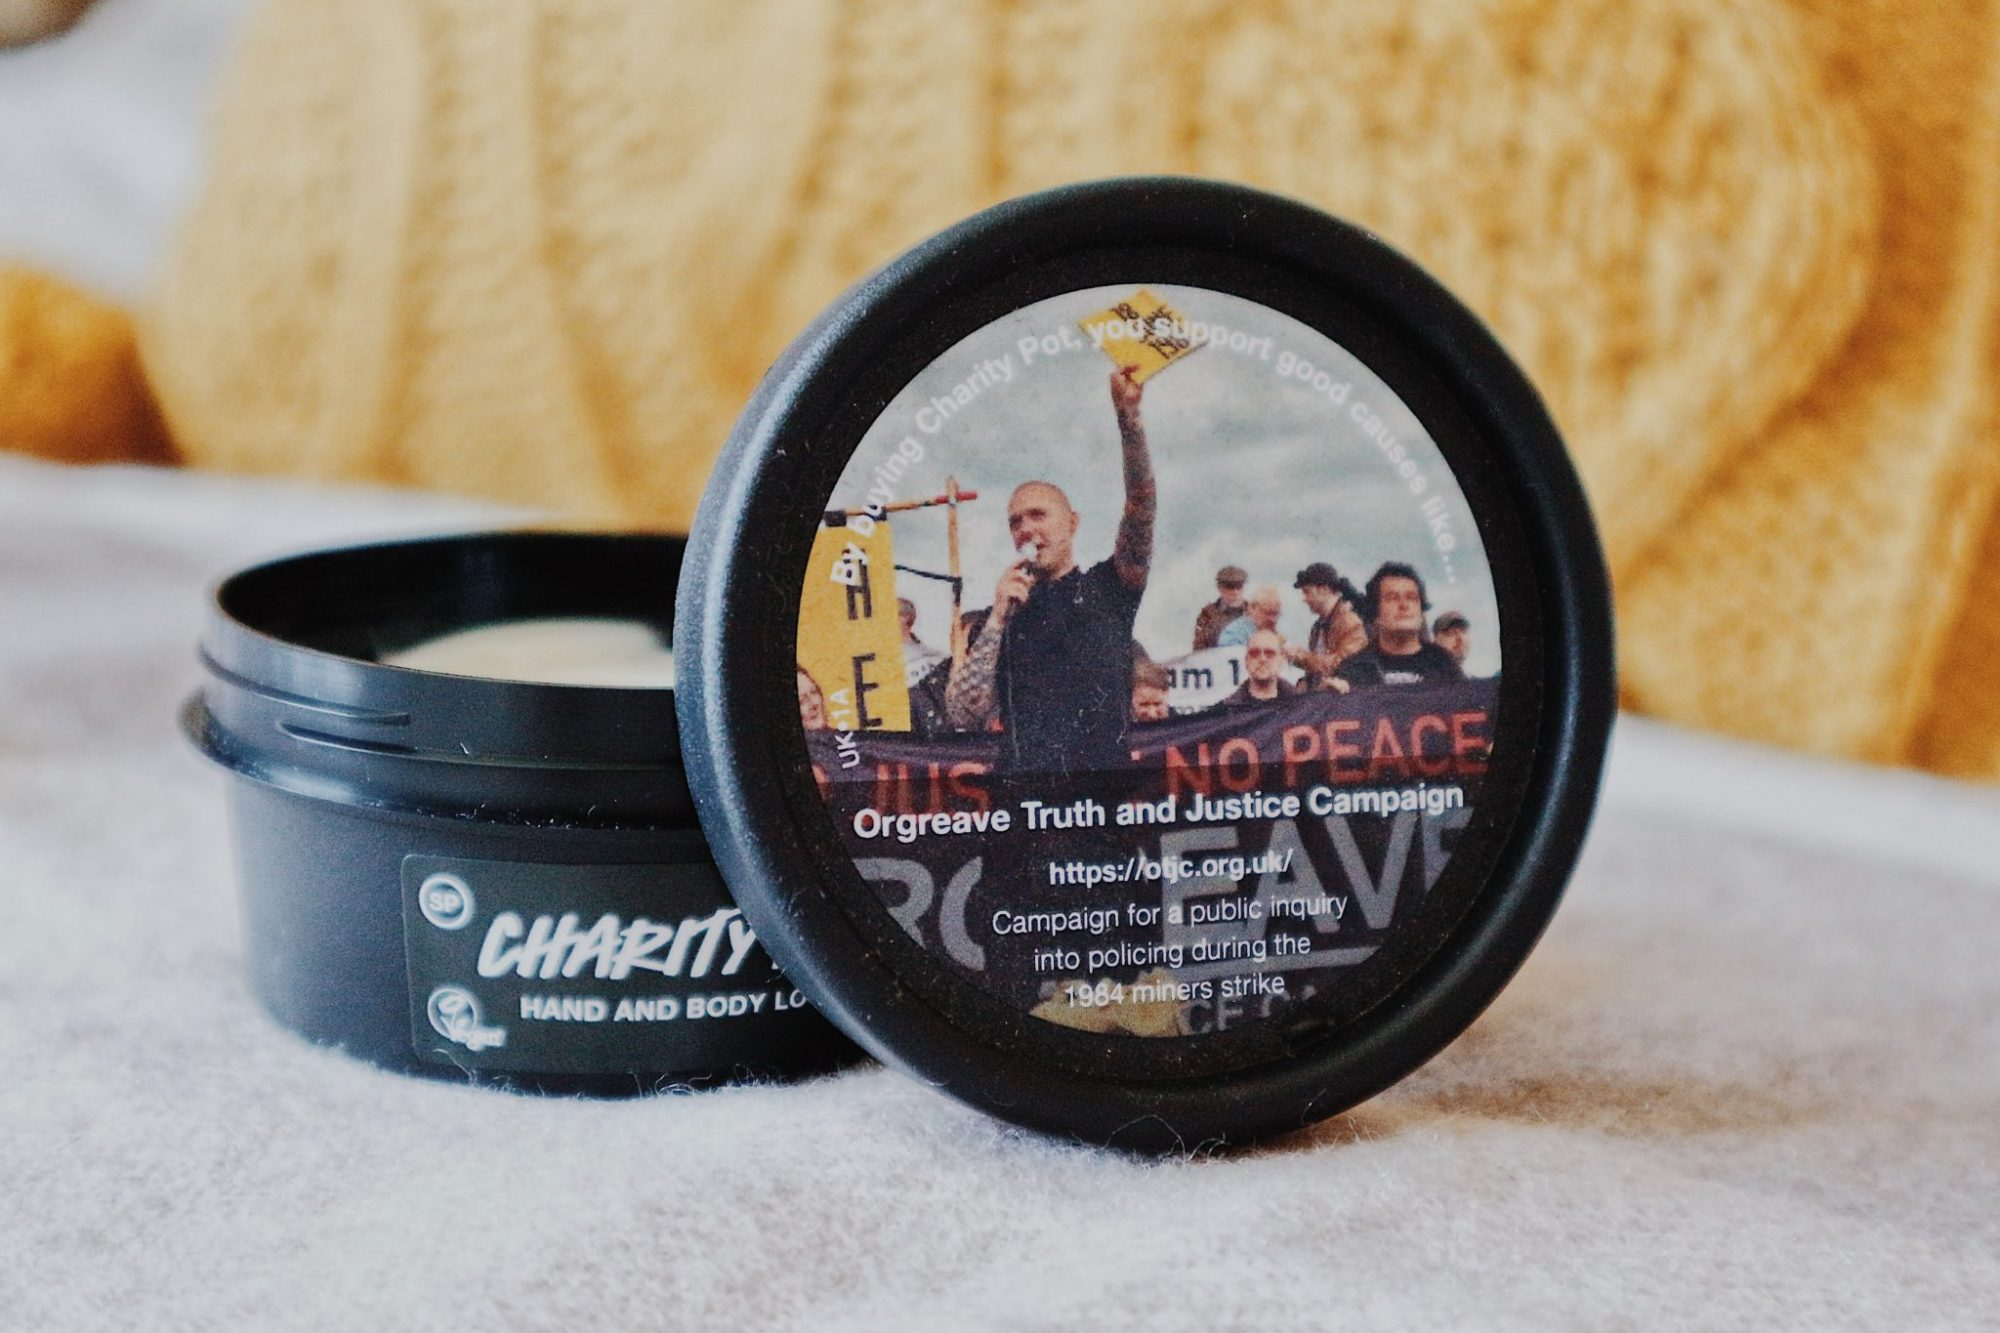 Lush Charity Pot Body Cream